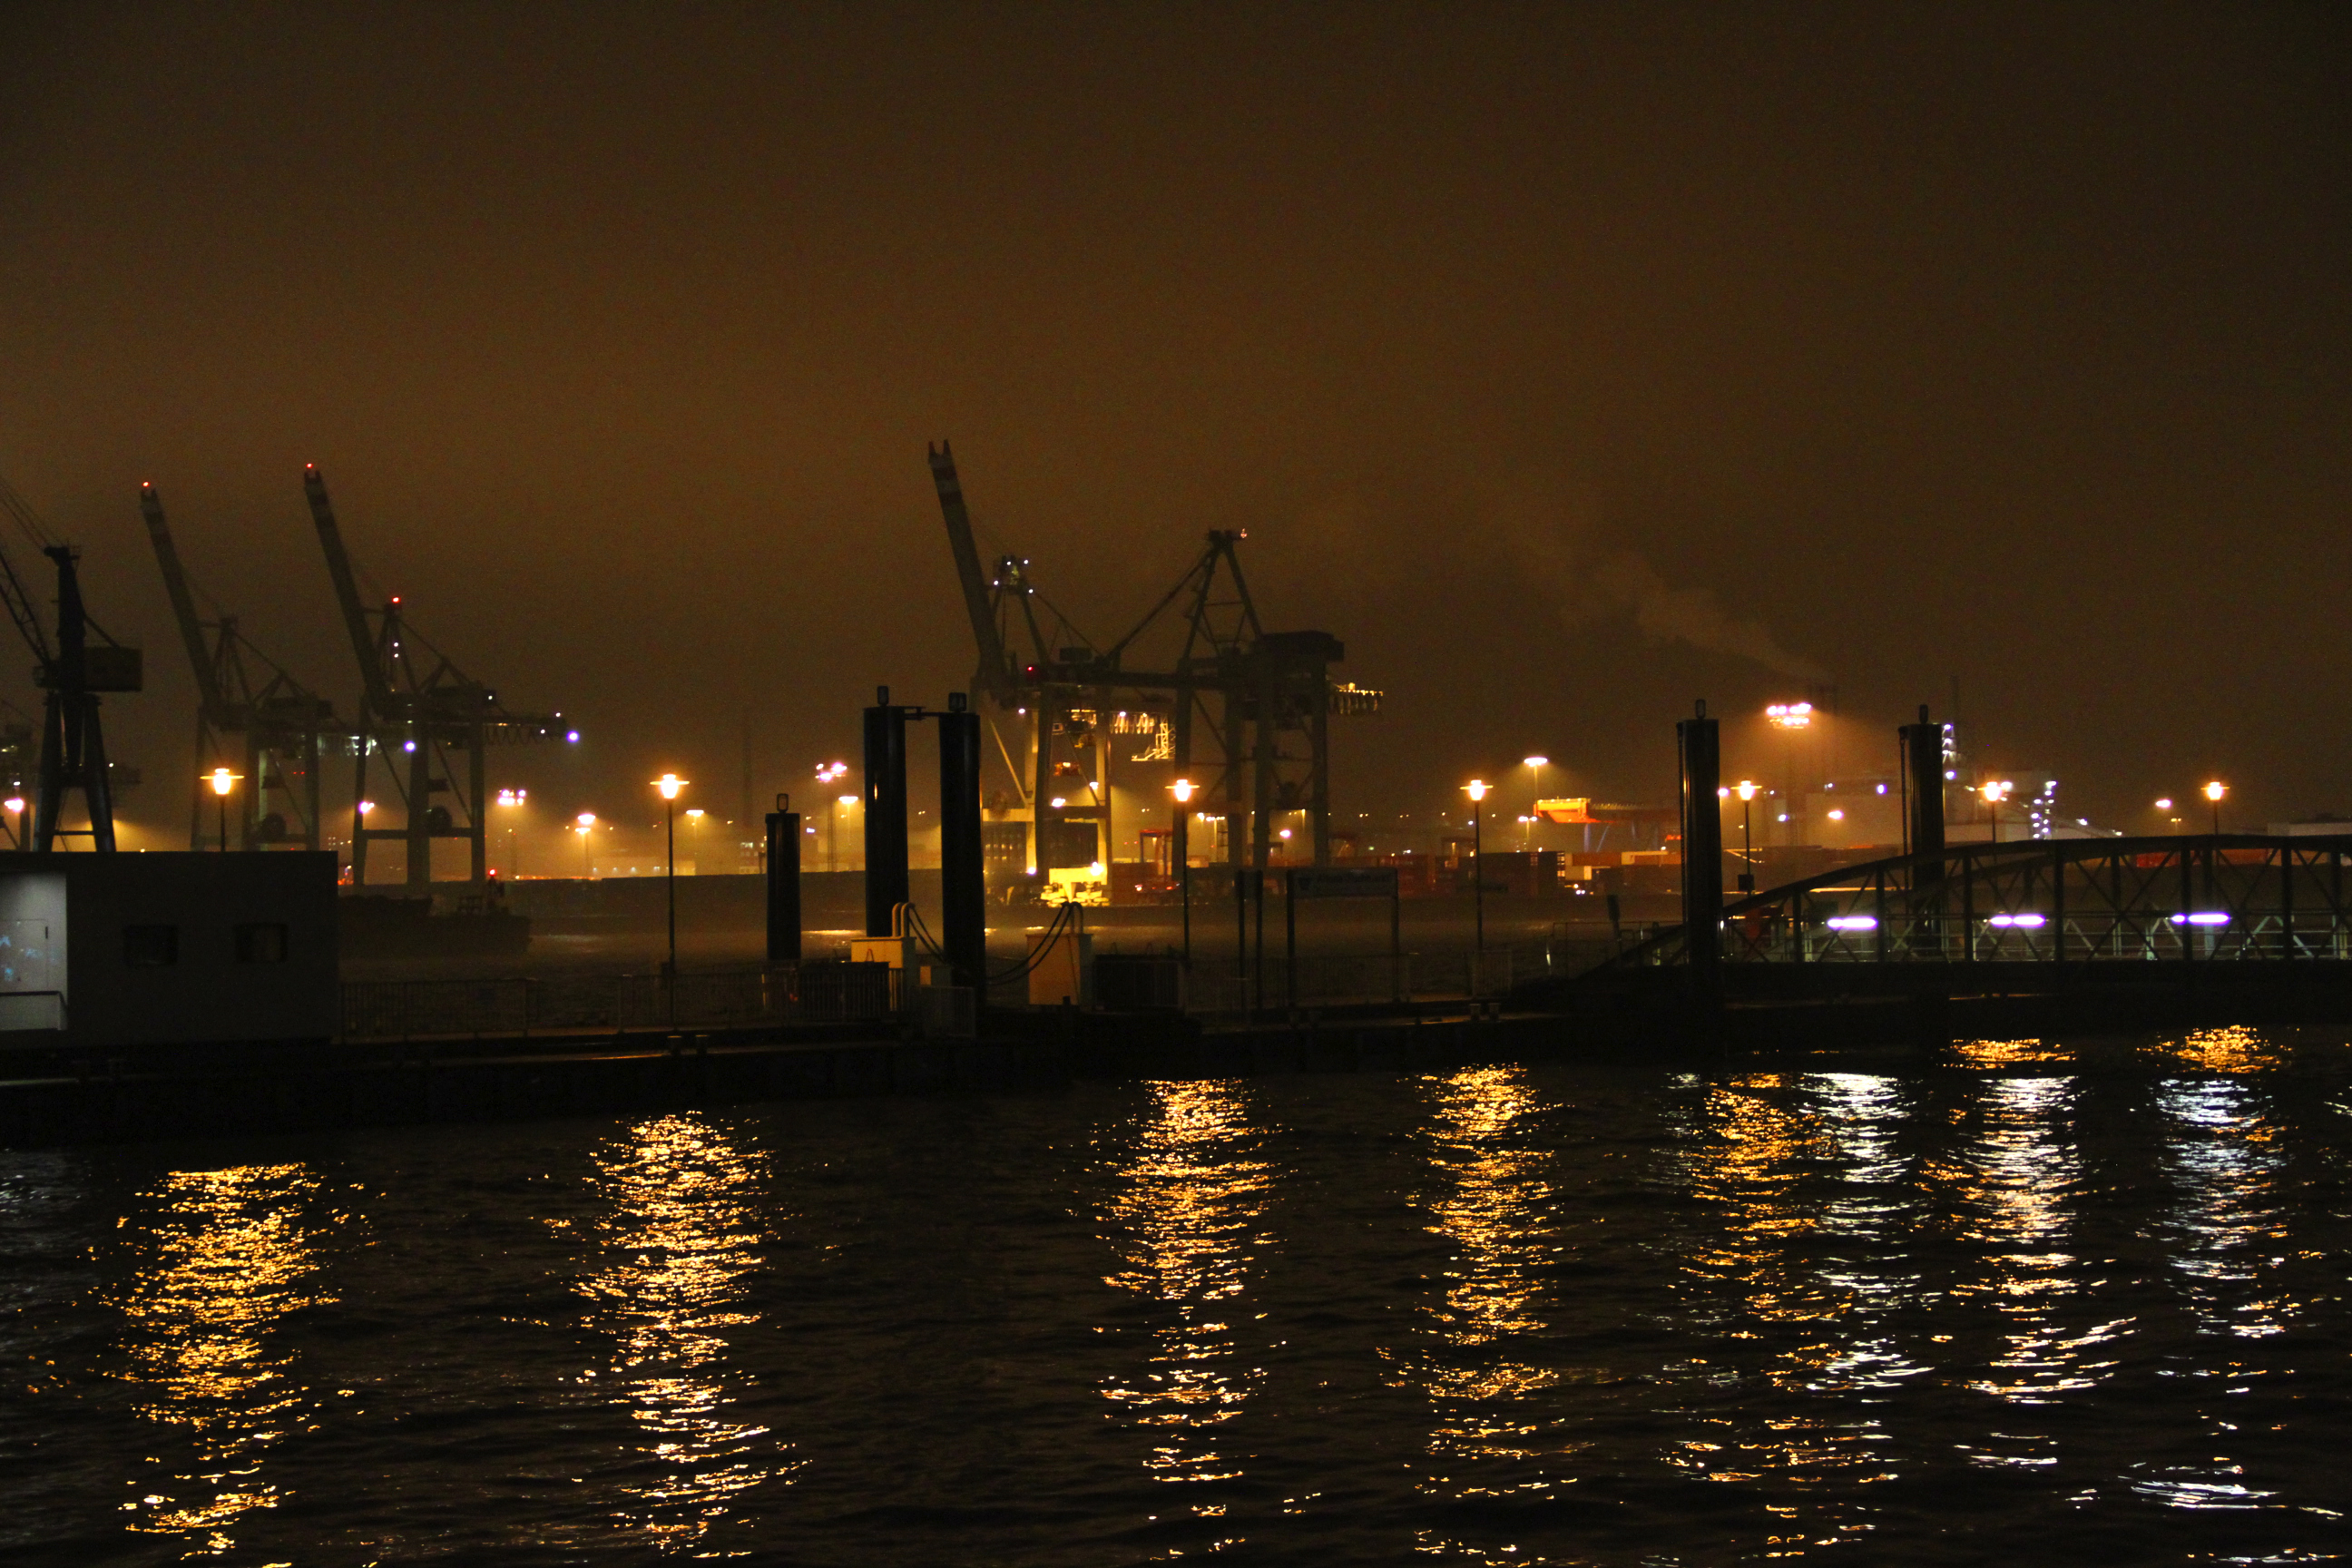 Port at night photo